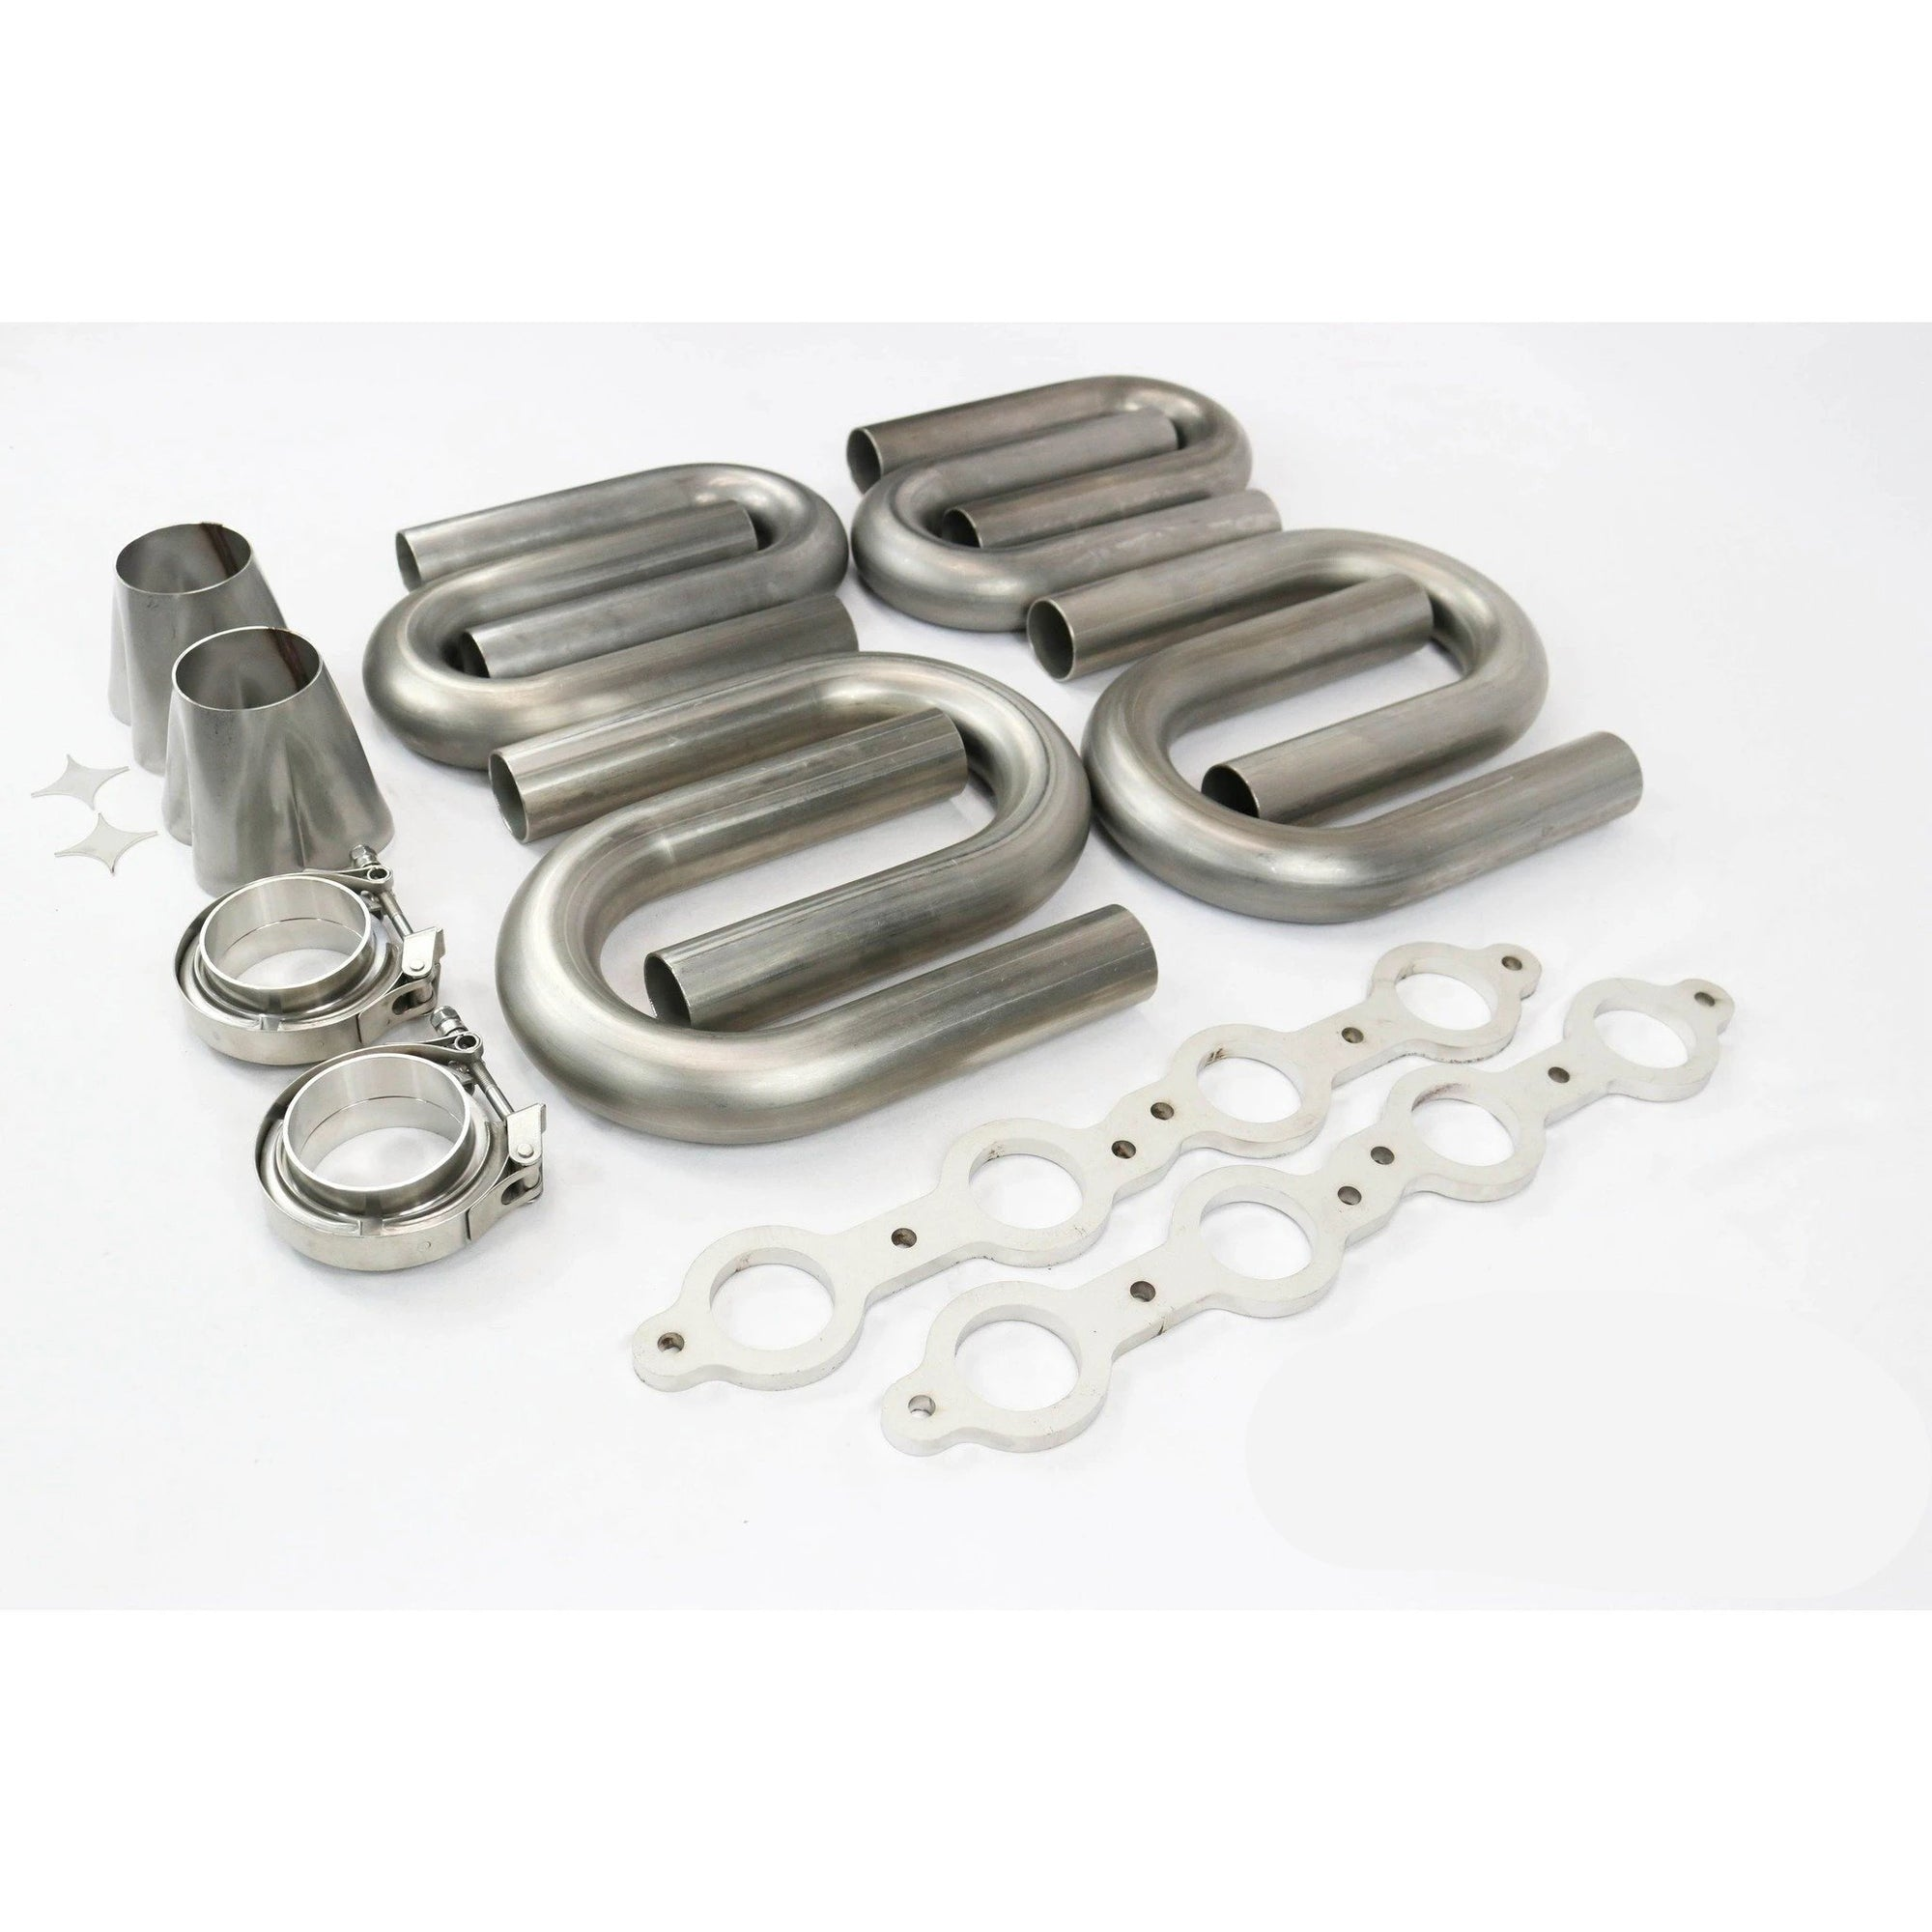 "Motion Raceworks LS1 1.875"" Primary 304 Stainless Steel Turbo Header Kit-Kit-Motion Raceworks"